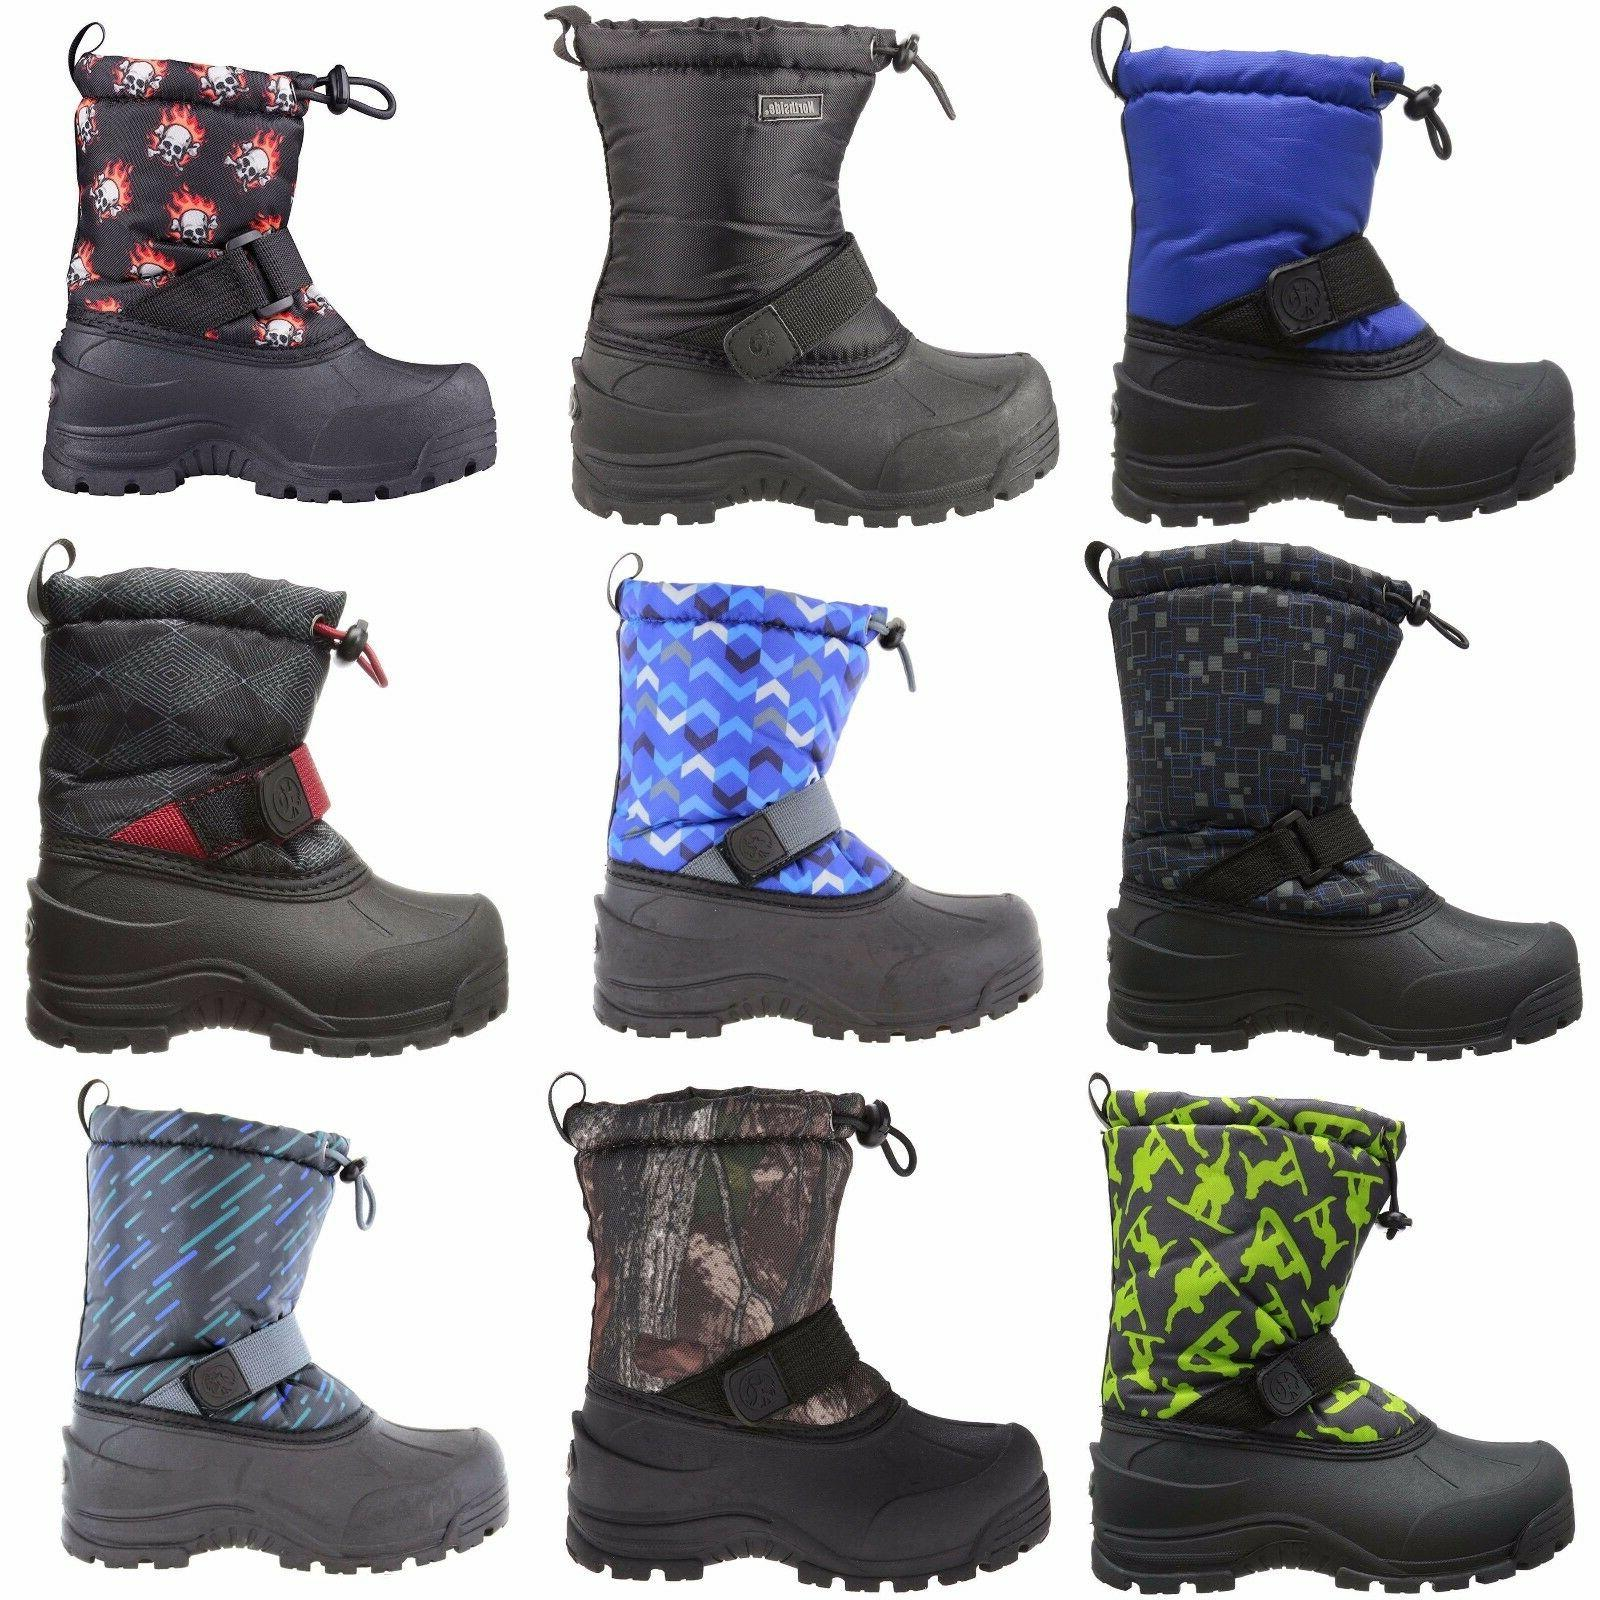 unisex kids frosty thermolite waterproof lightweight winter